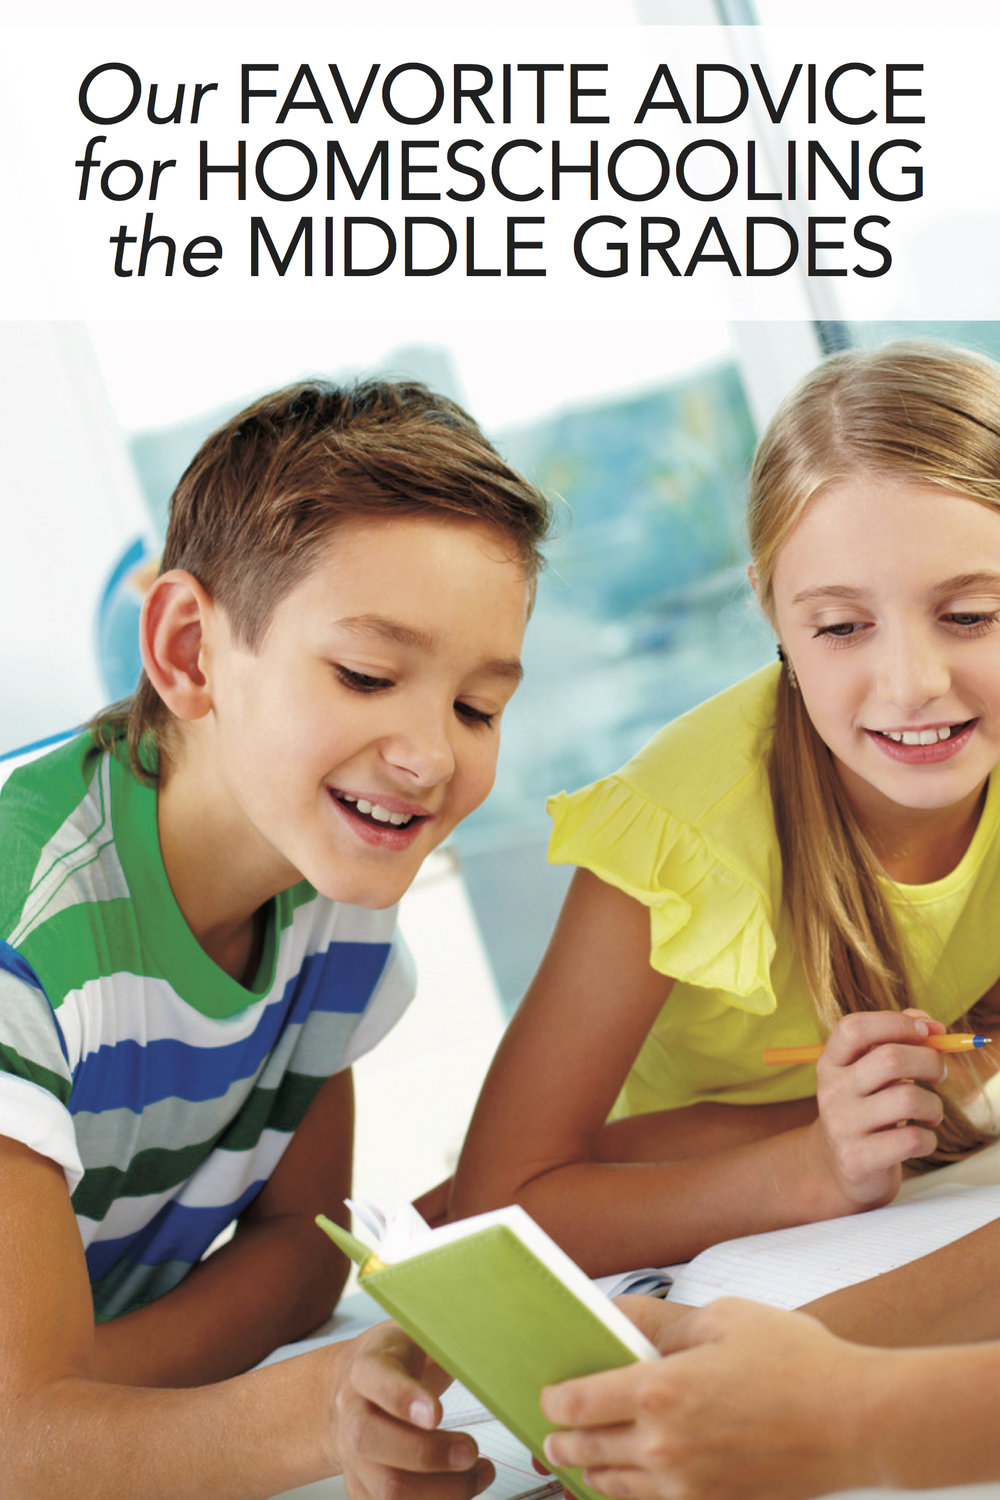 Best of HSL: Our Favorite Advice for Homeschooling the Middle Grades